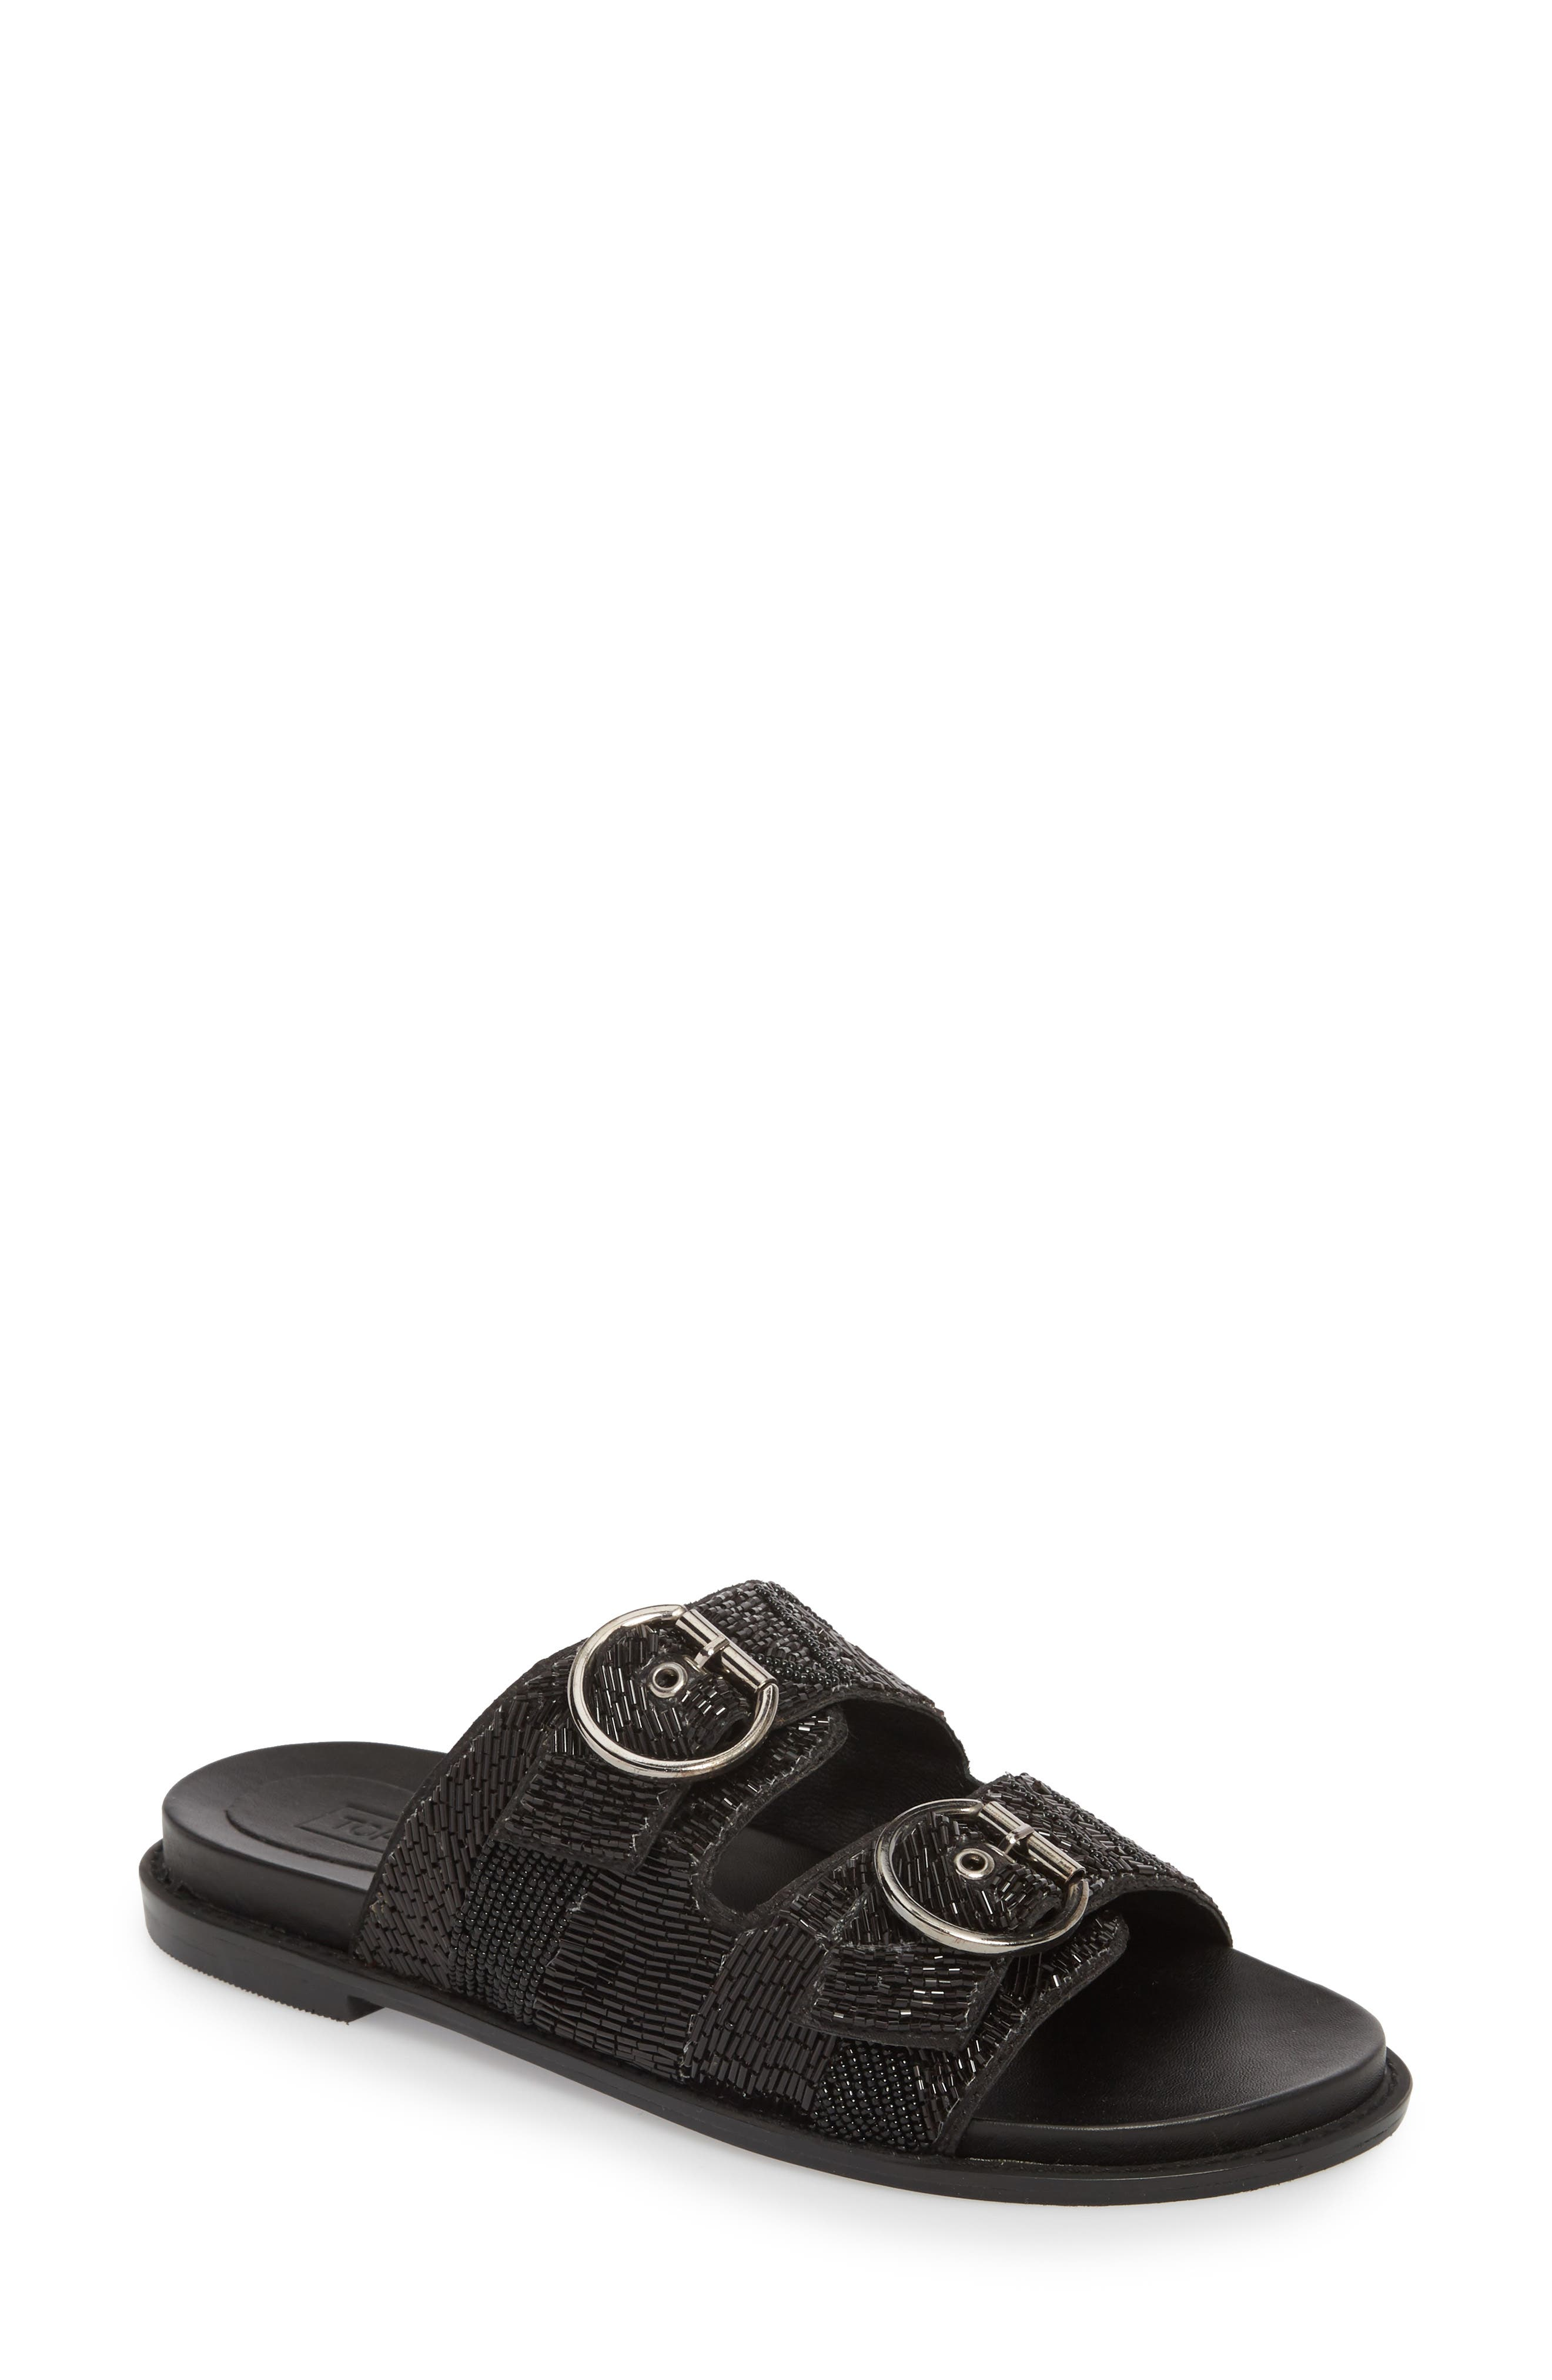 Frankie Embellished Slide Sandal,                             Main thumbnail 1, color,                             001